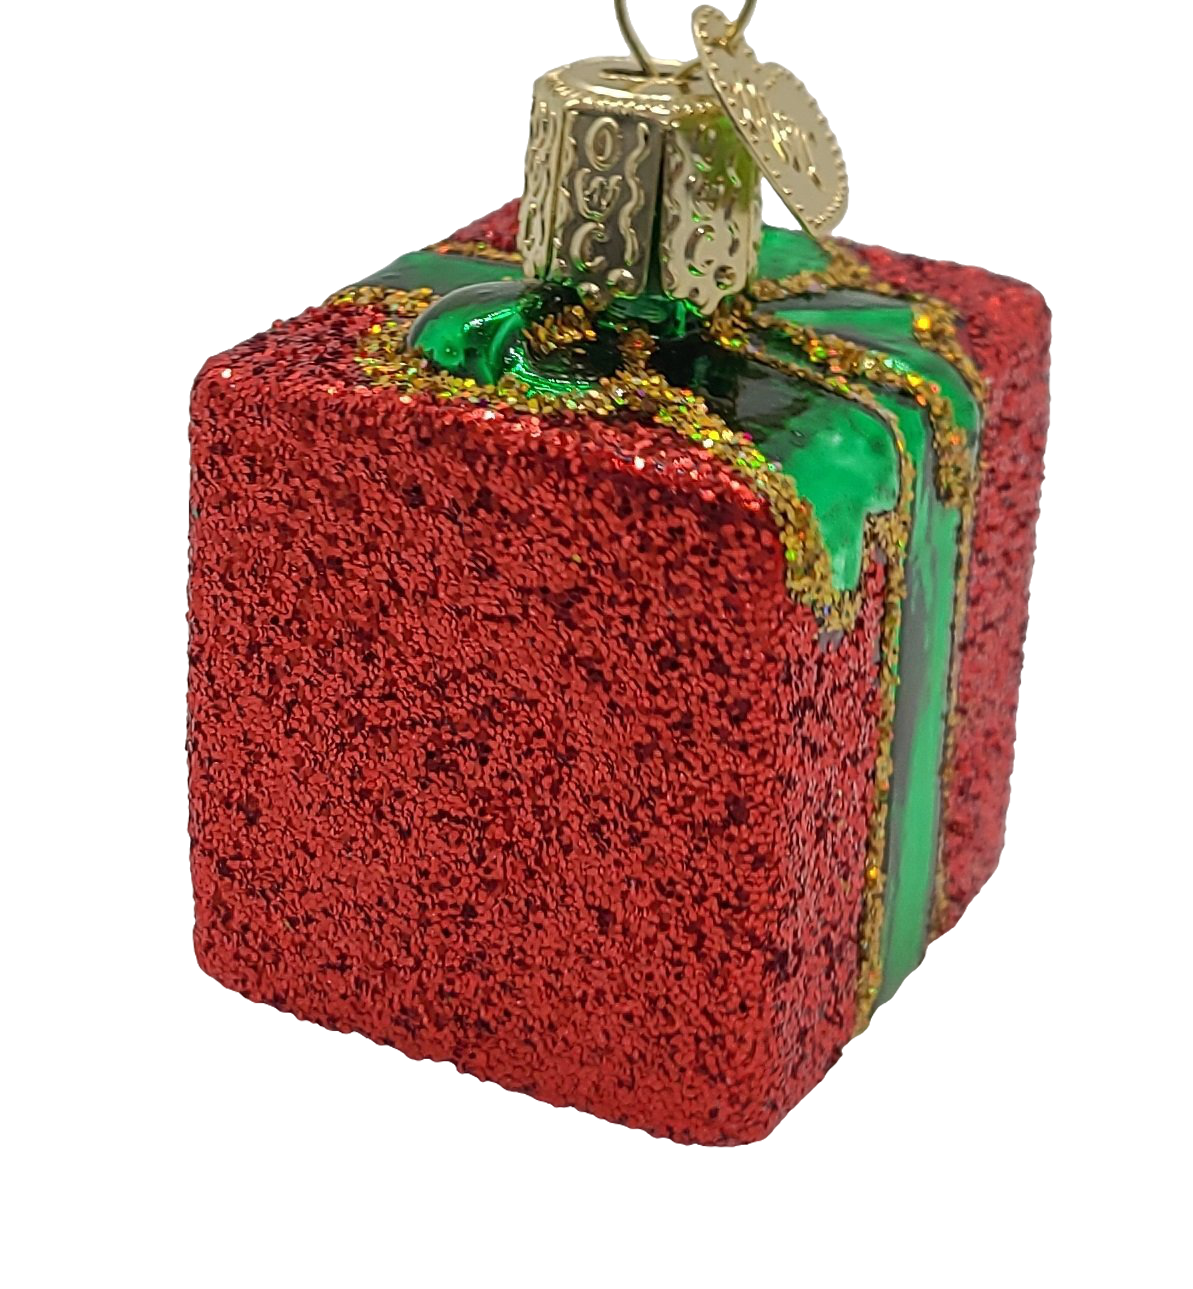 Blown Glass Hanging Red Gift Box with Green Ribbon Christmas Ornament - Schmidt Christmas Market Christmas Decoration